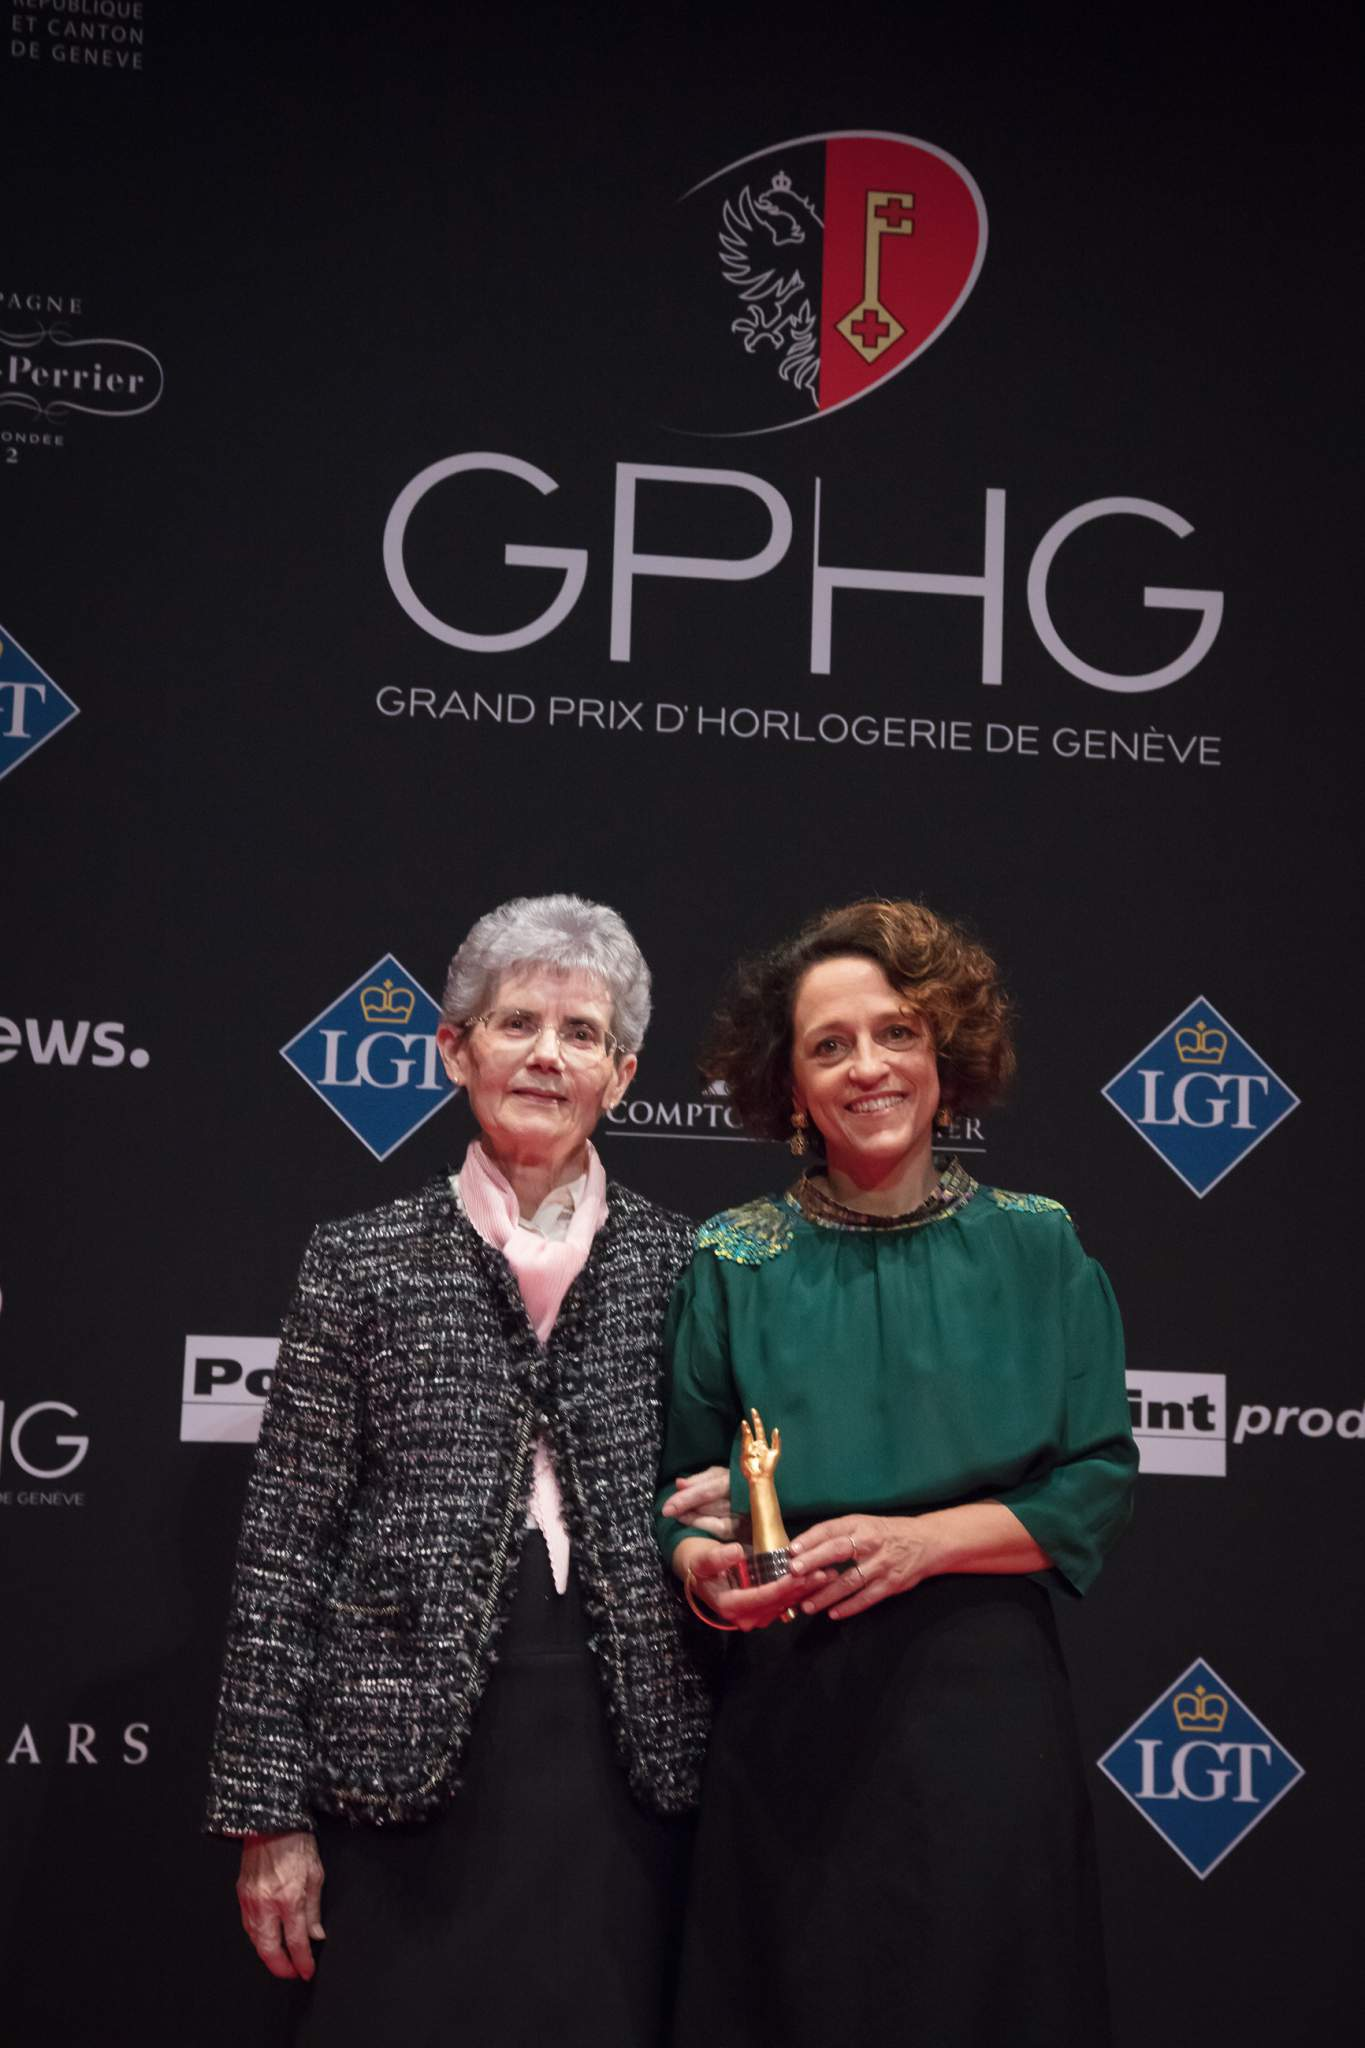 Suzanne Rohr and Anita Porchet (winners of Special Jury Prize 2017)